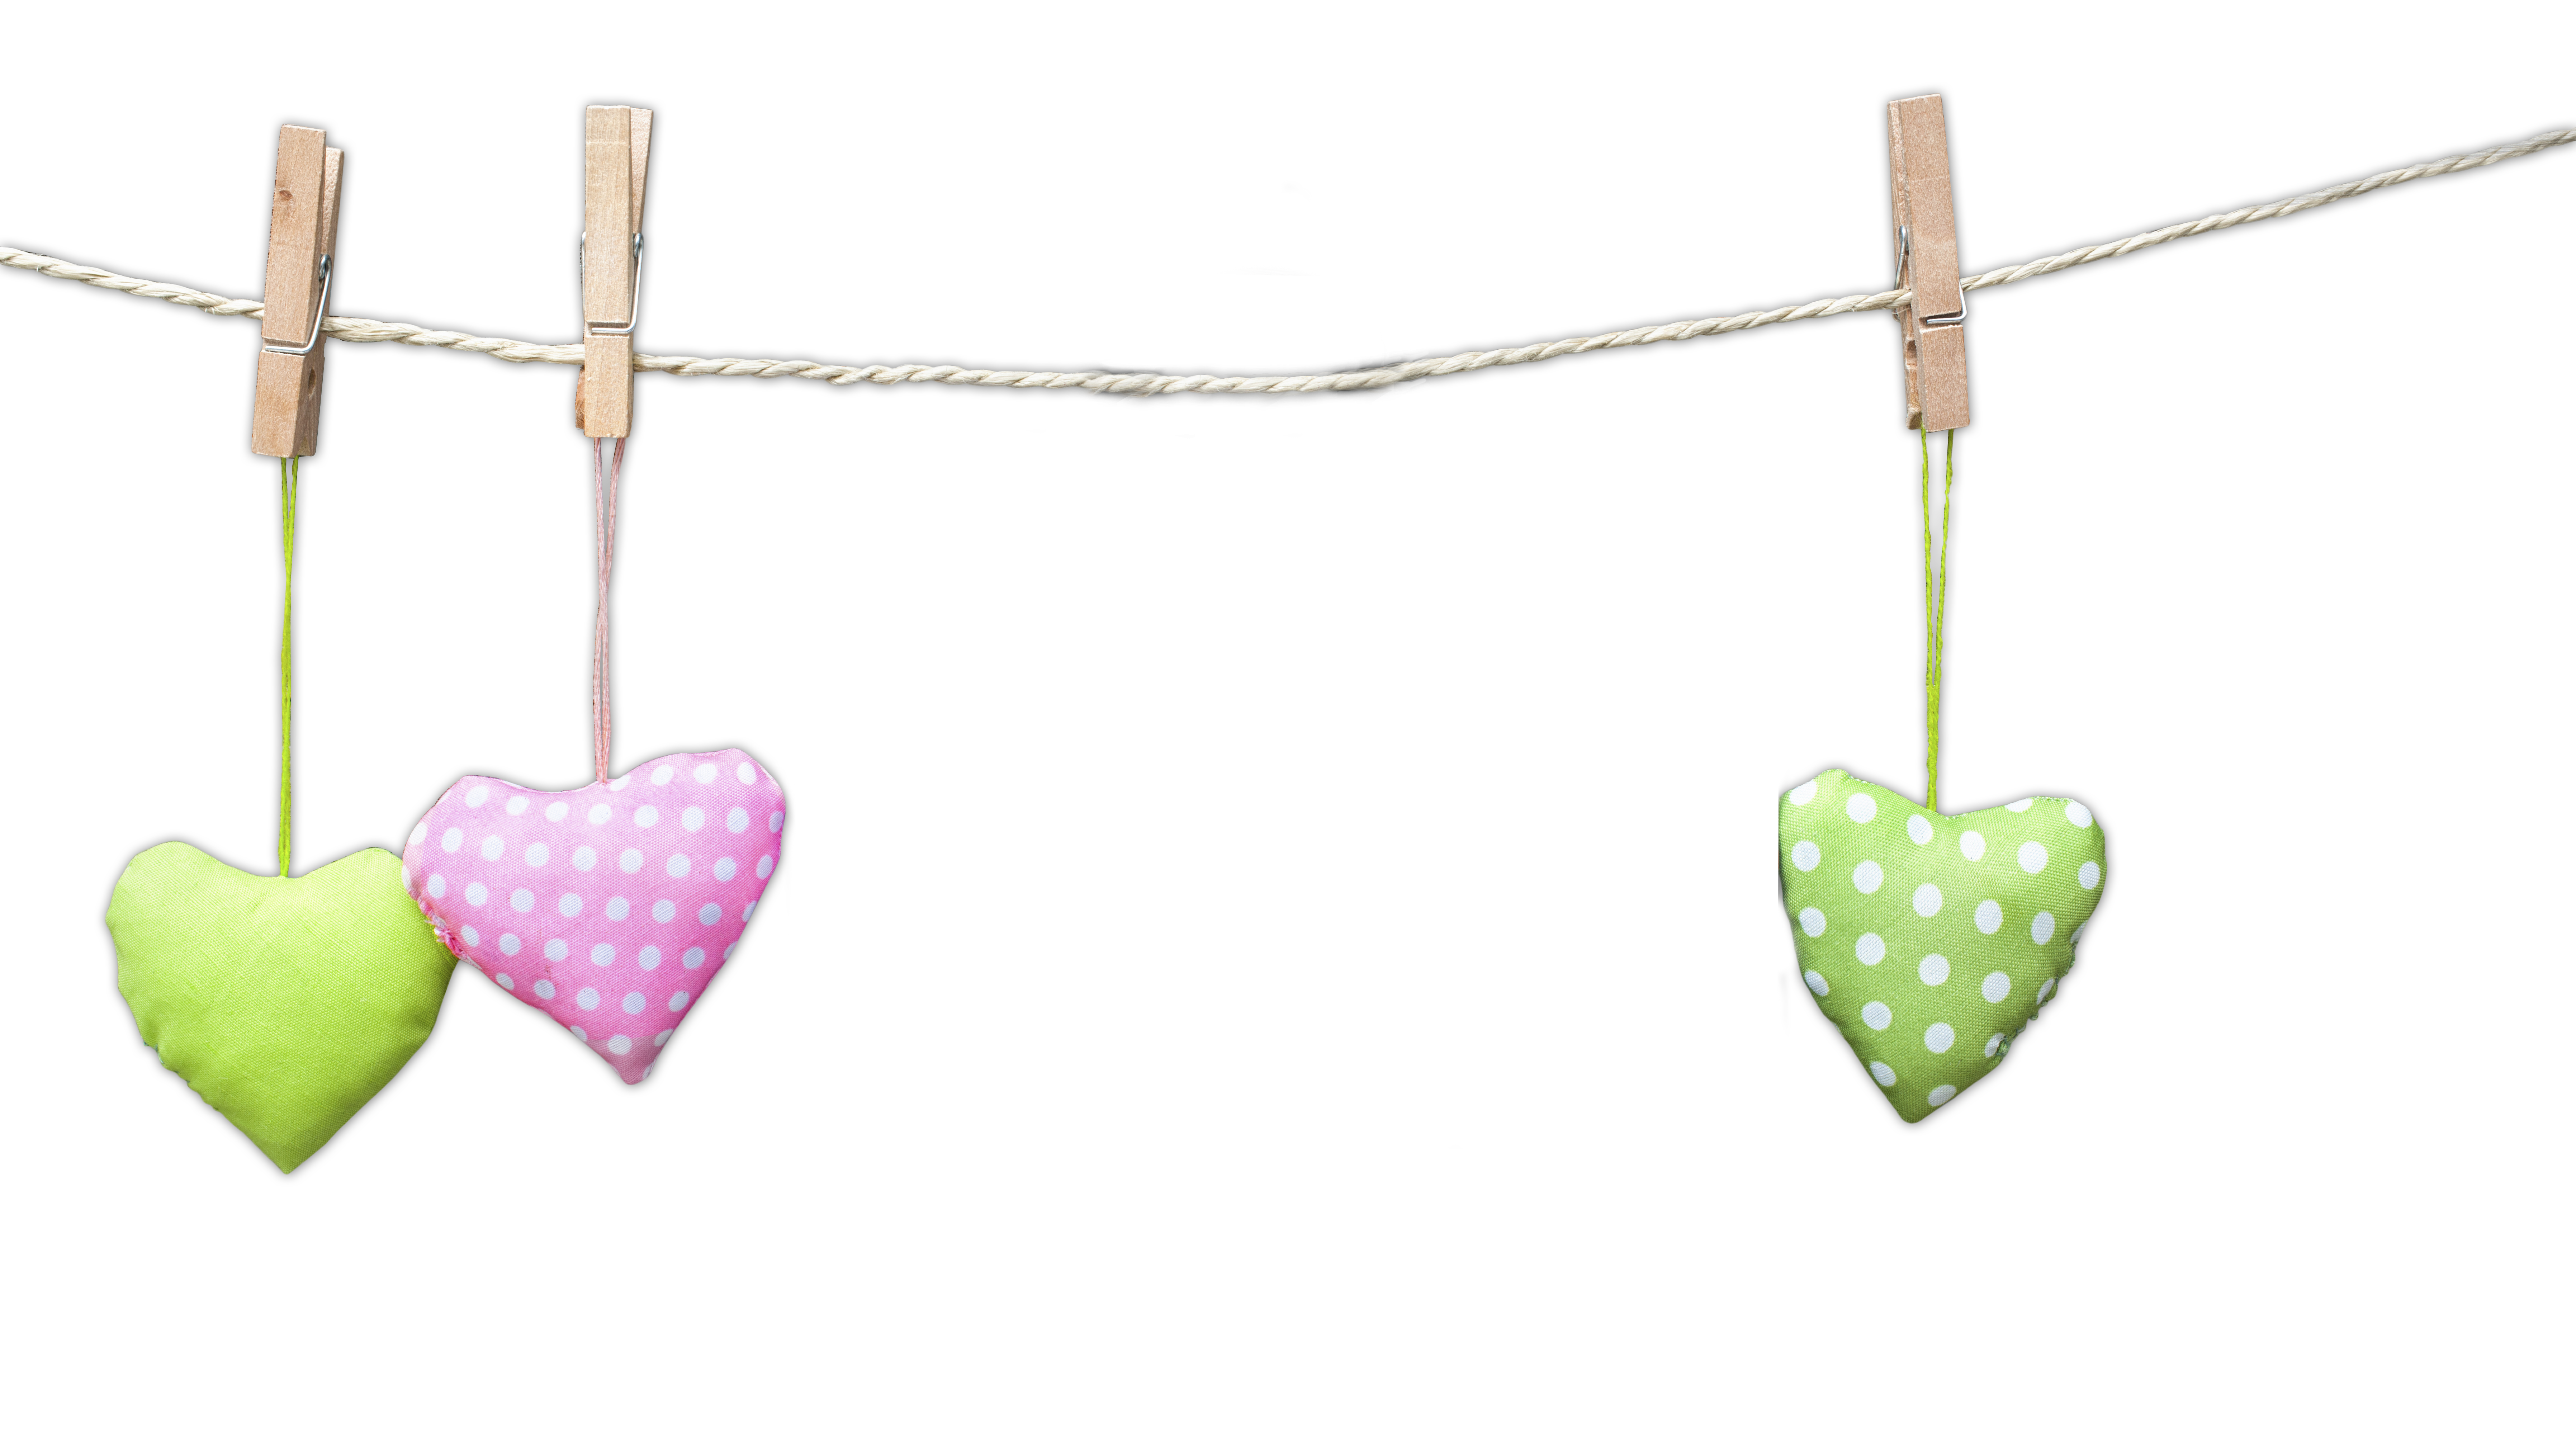 clip free stock Clothespin clipart laundry line. Png washing transparent images.